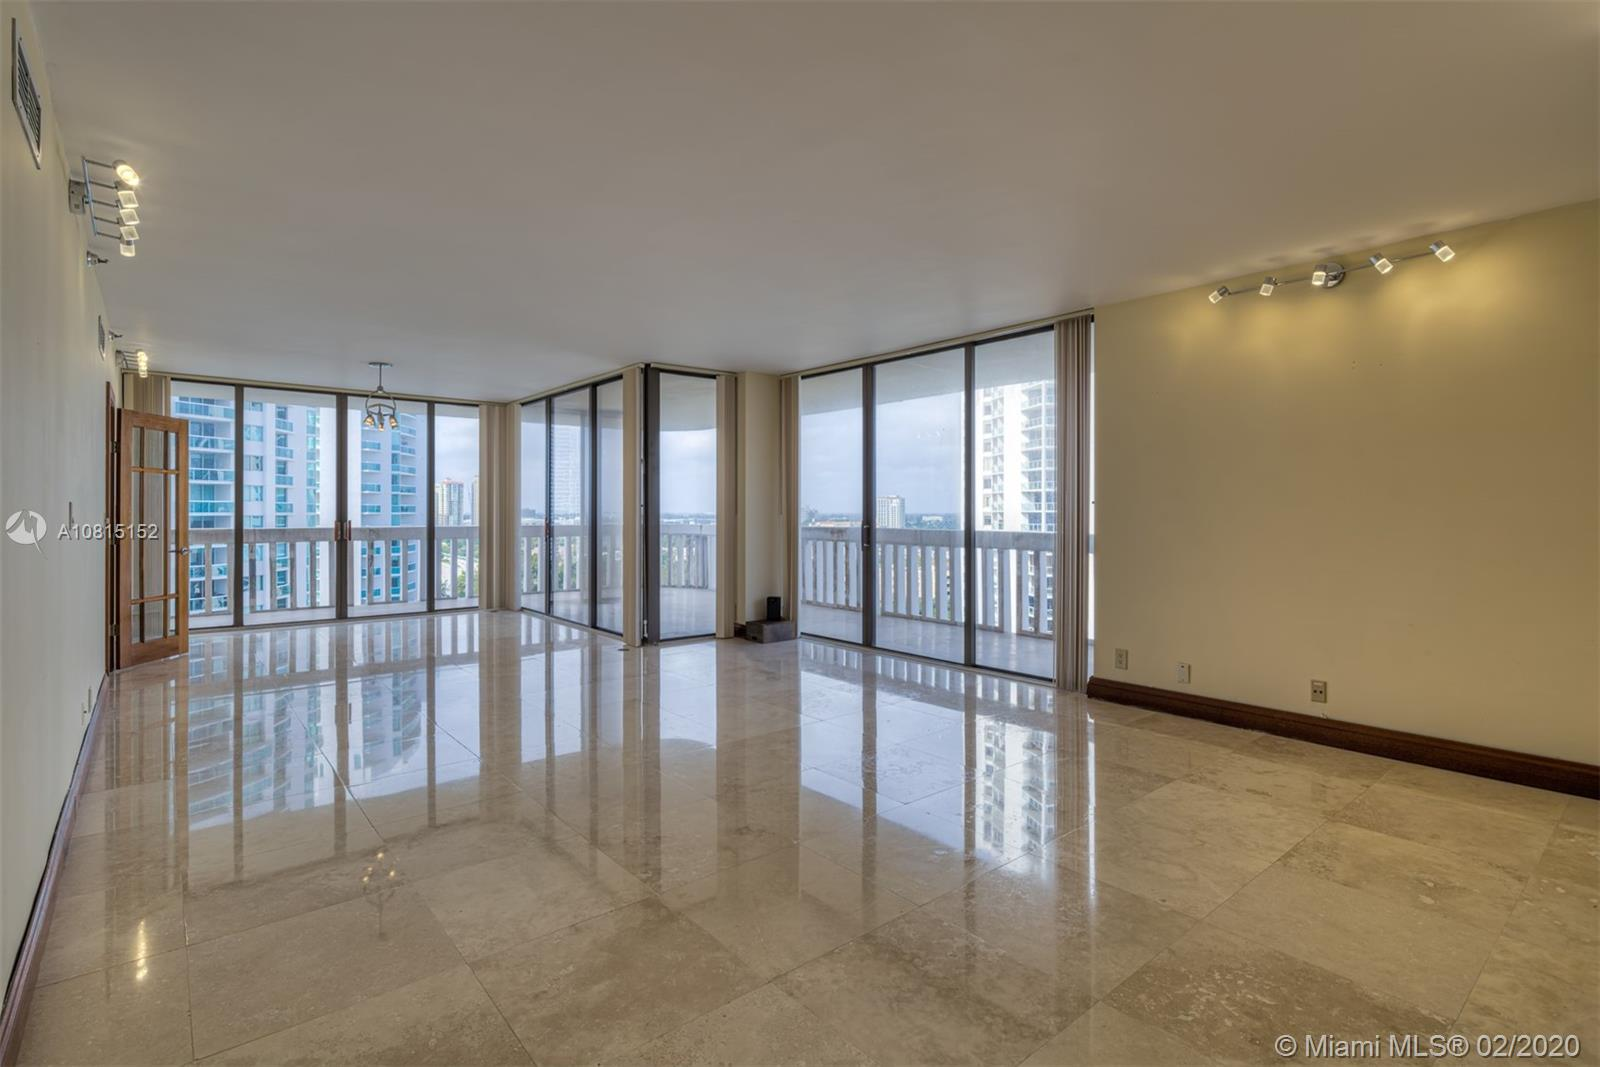 Turnberry Towers #11D - 19355 Turnberry Way #11D, Aventura, FL 33180